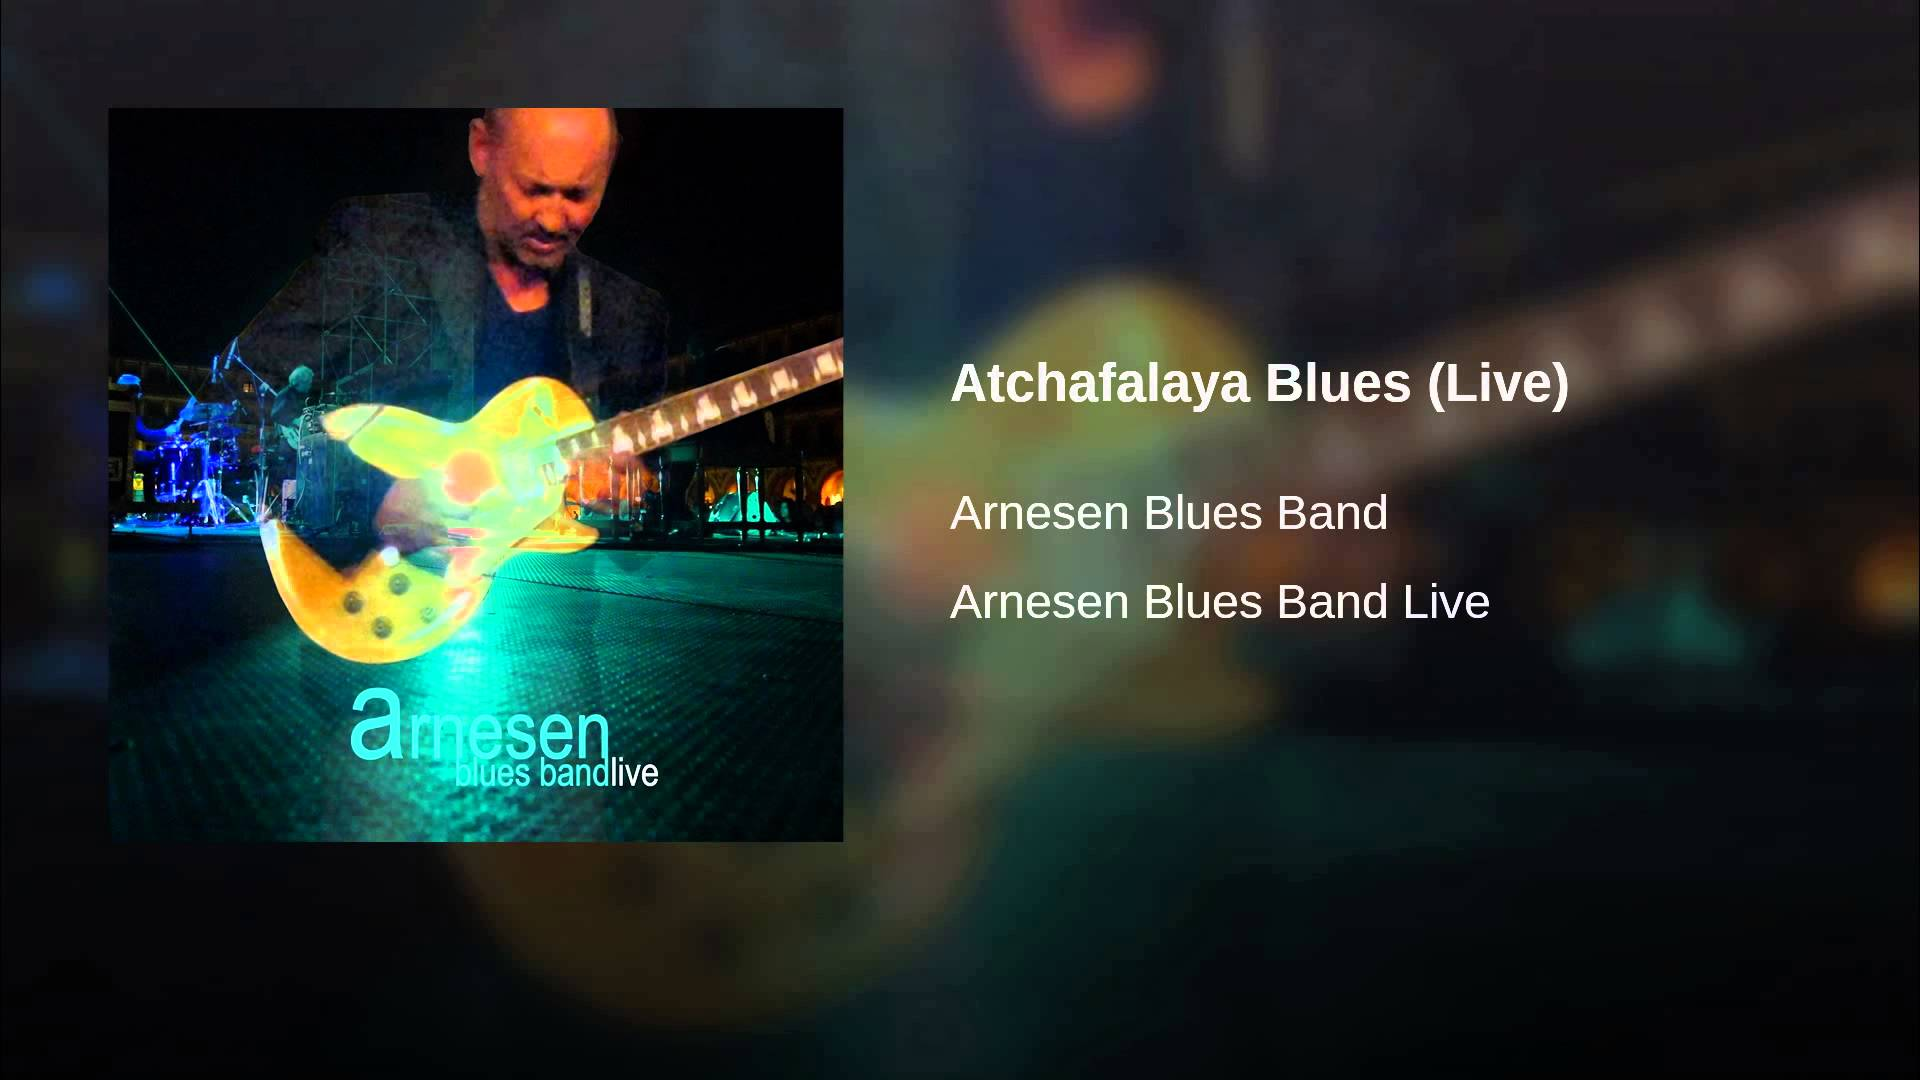 Atchafalaya Blues (Live)